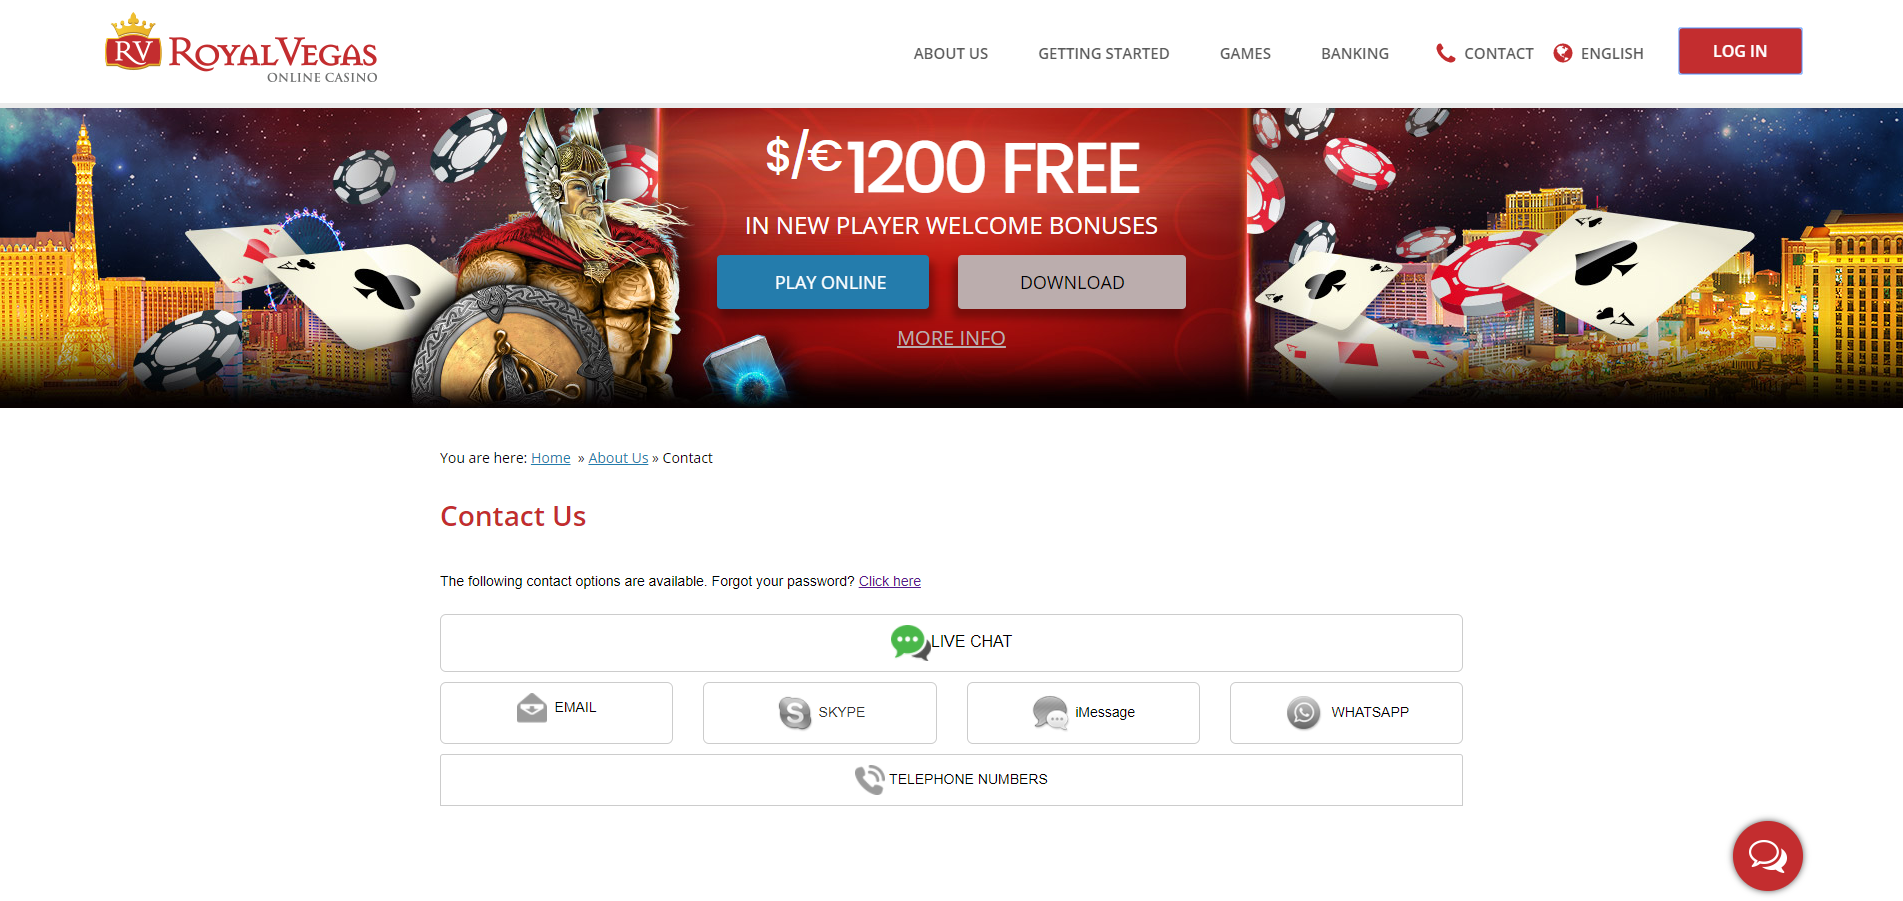 Smashing casino Online Review With Promotions & Bonuses